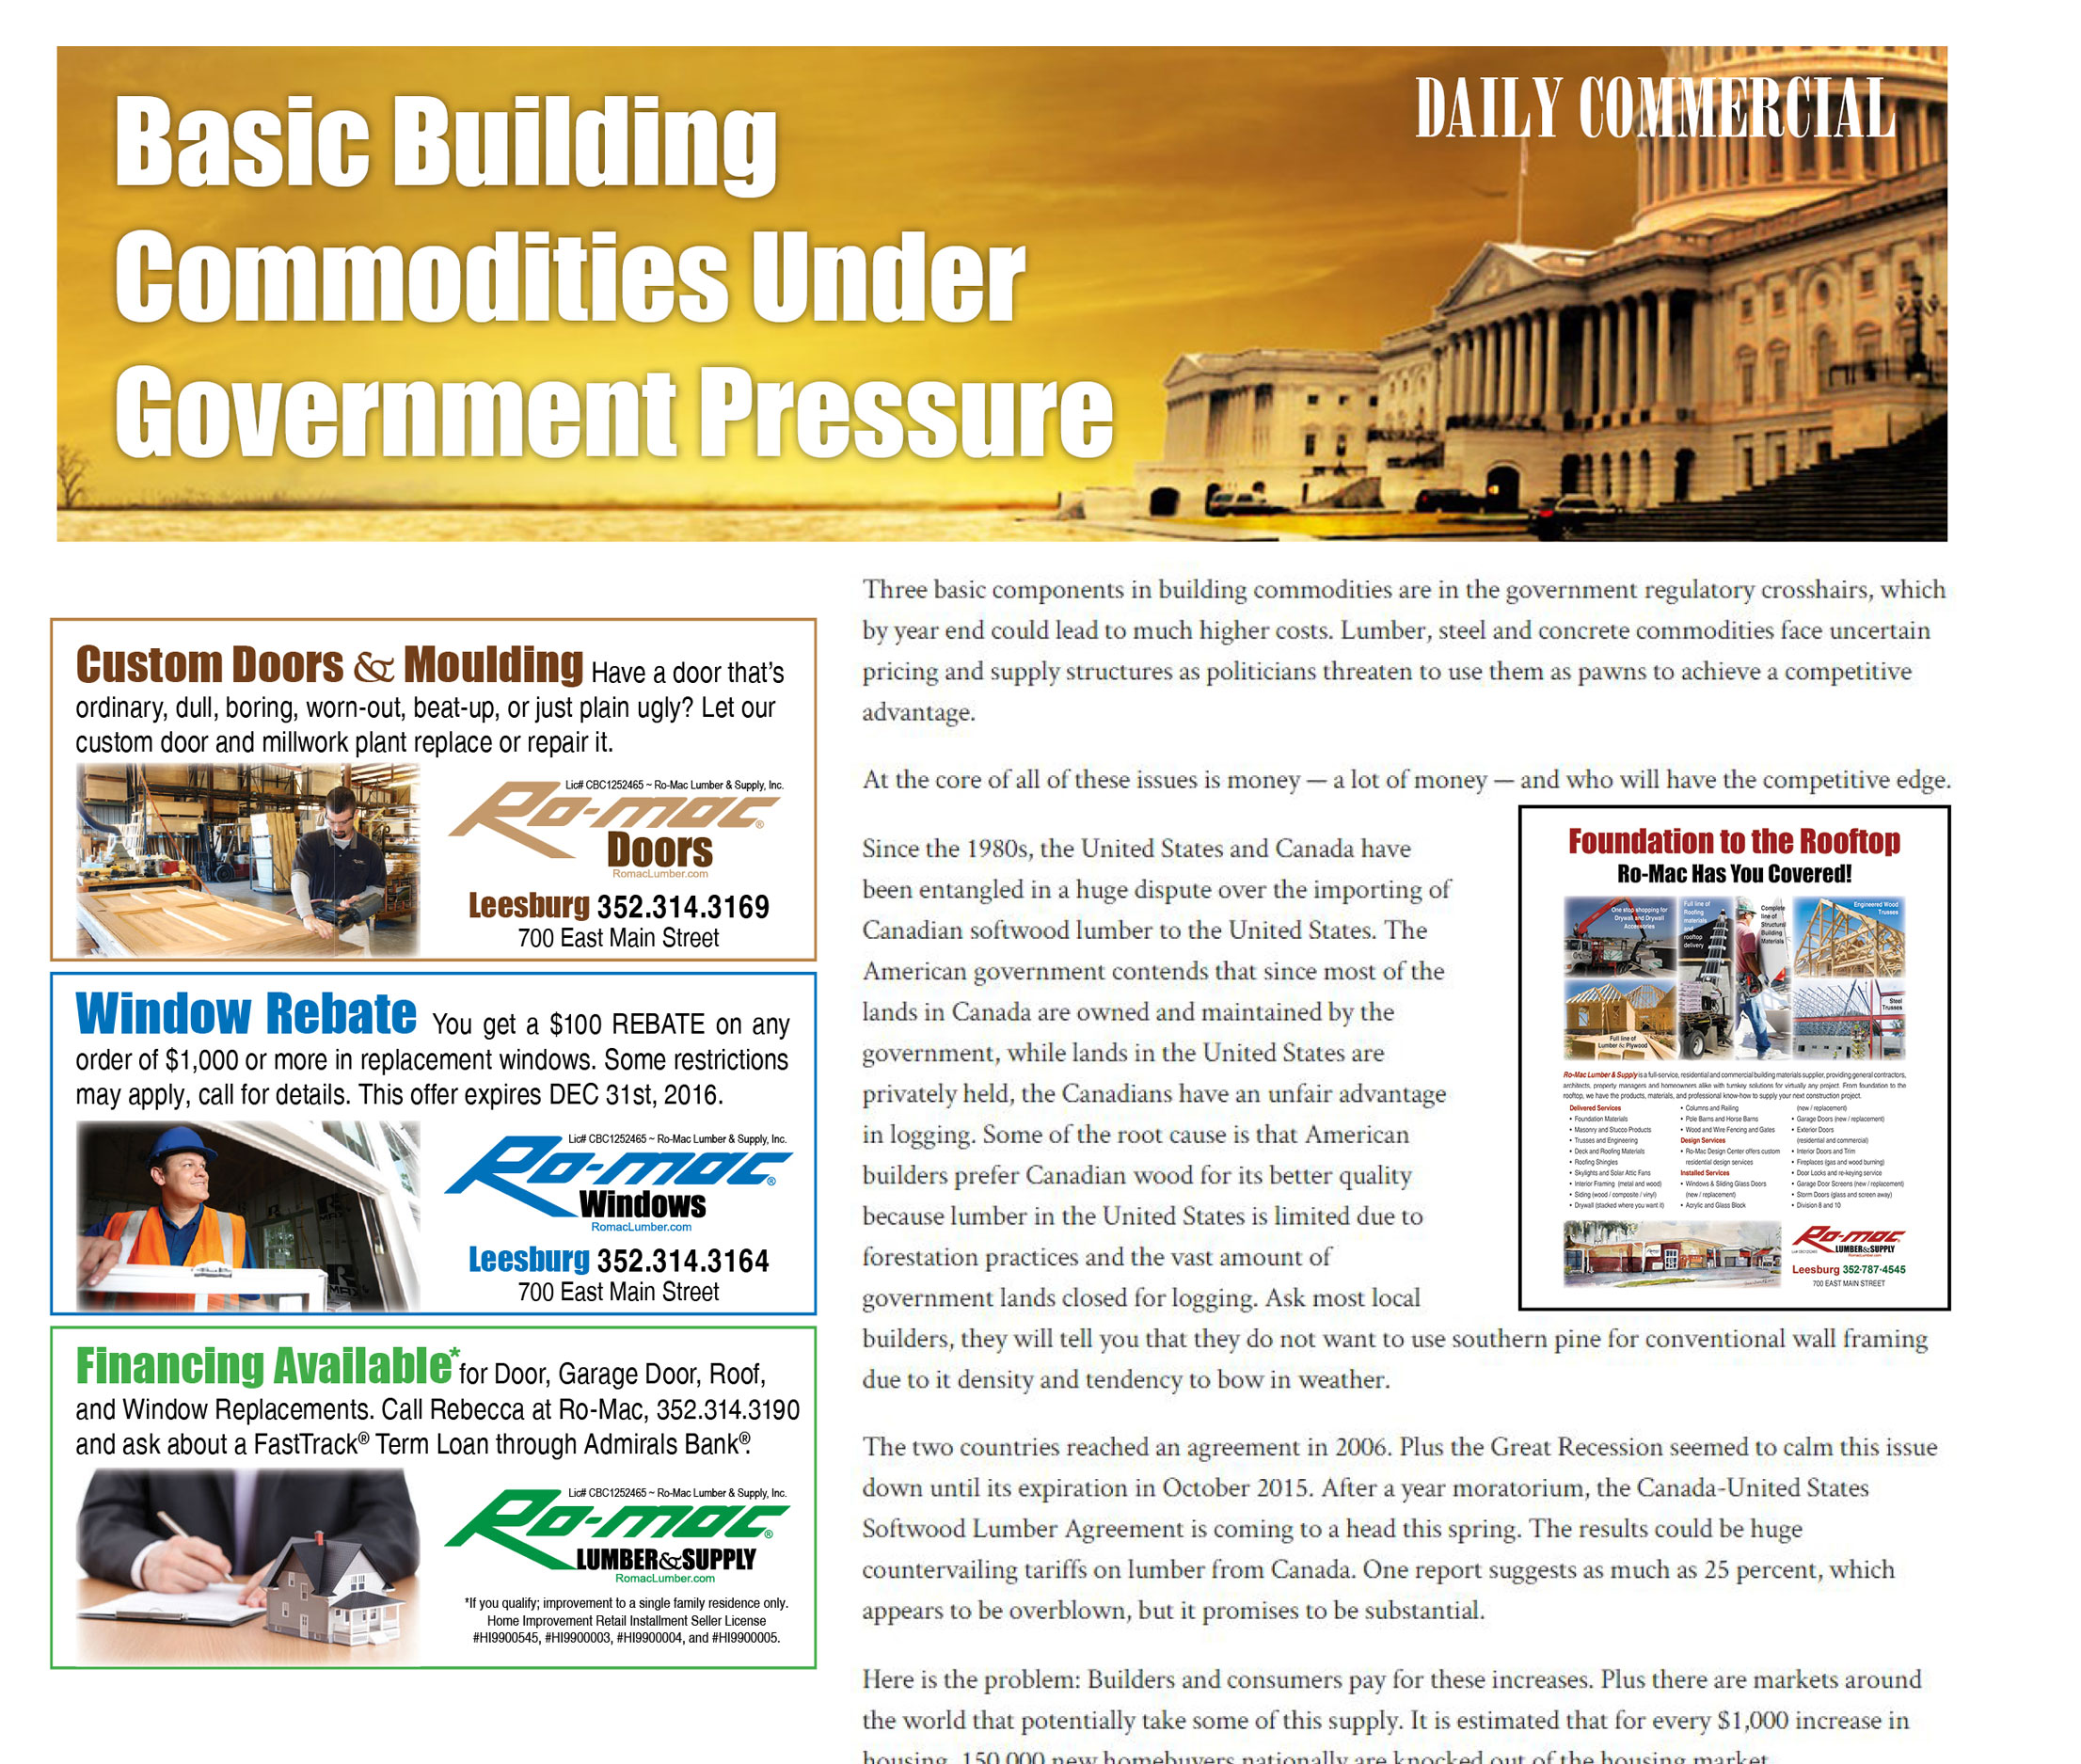 17-03-11 BuildingCommodities